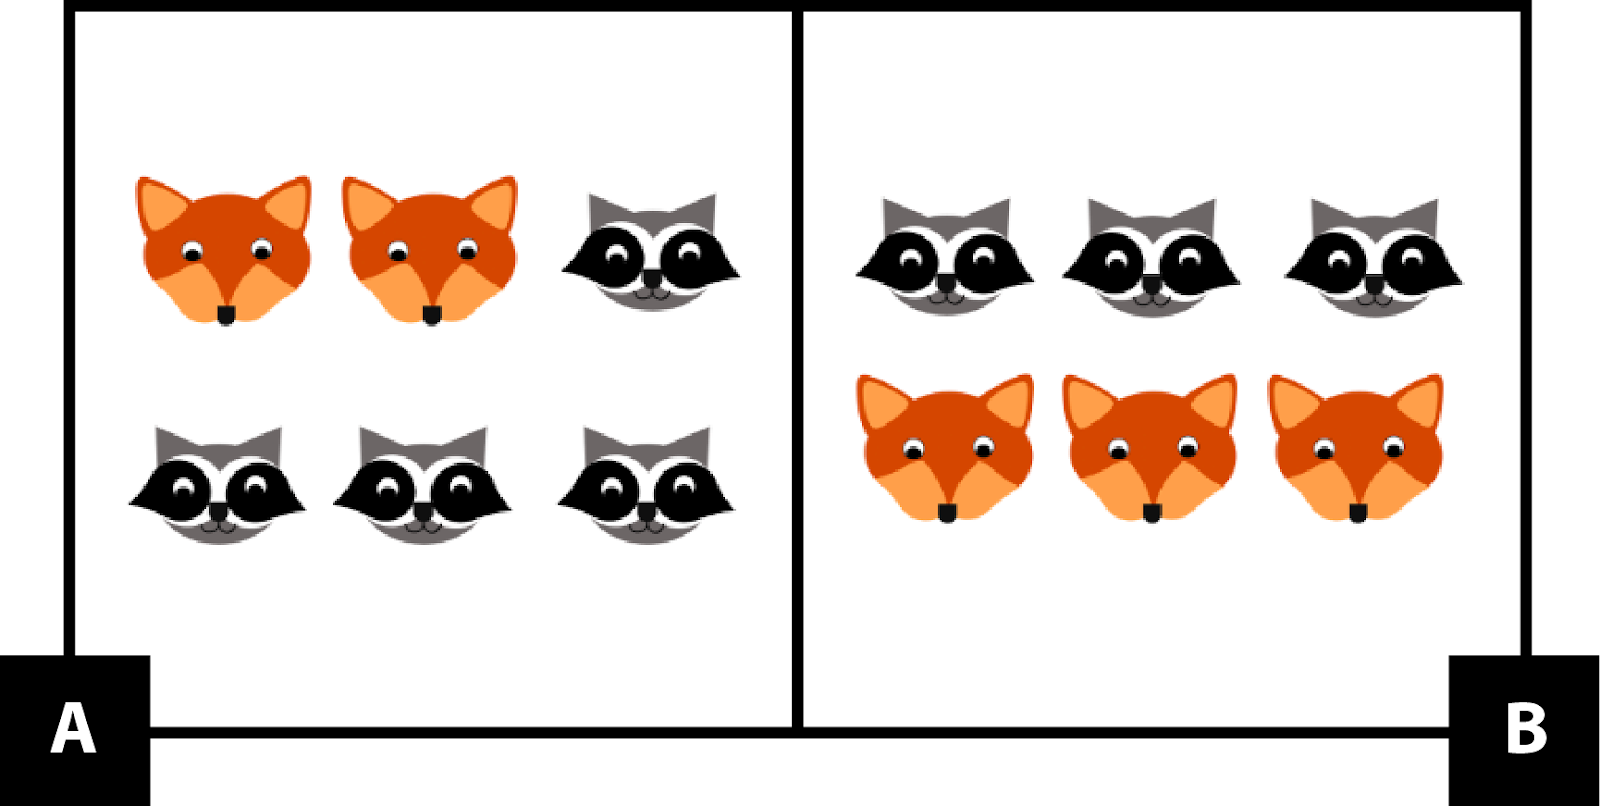 A. has 2 foxes and 1 raccoon in the top row and 3 raccoons in the bottom row. B. has 3 raccoons in the top row and 3 foxes in the bottom row.